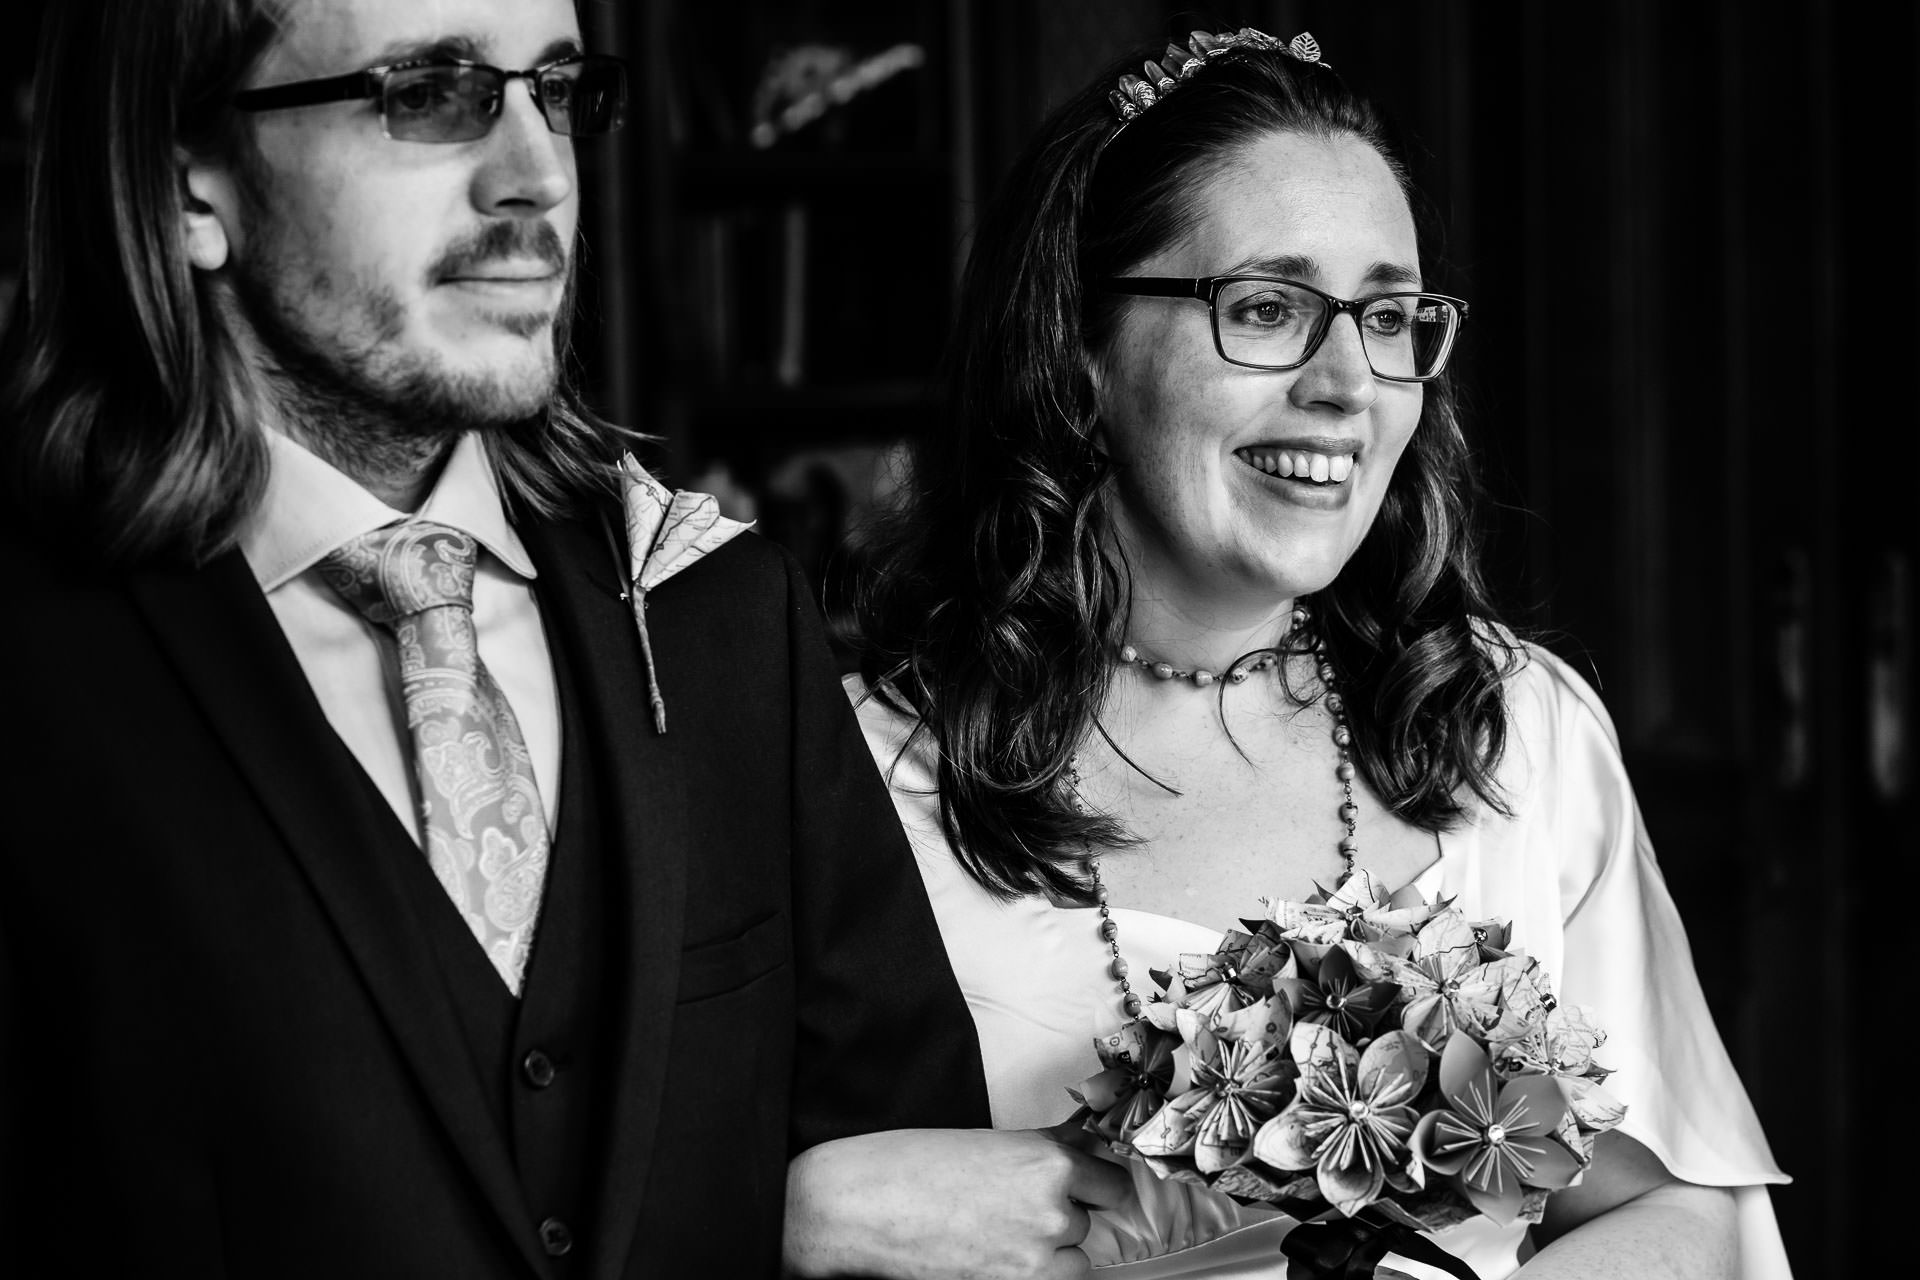 The Oakley Court, Windsor, Berkshire, UK Elopement Photographer | The bride is laughing during the couple's ceremony